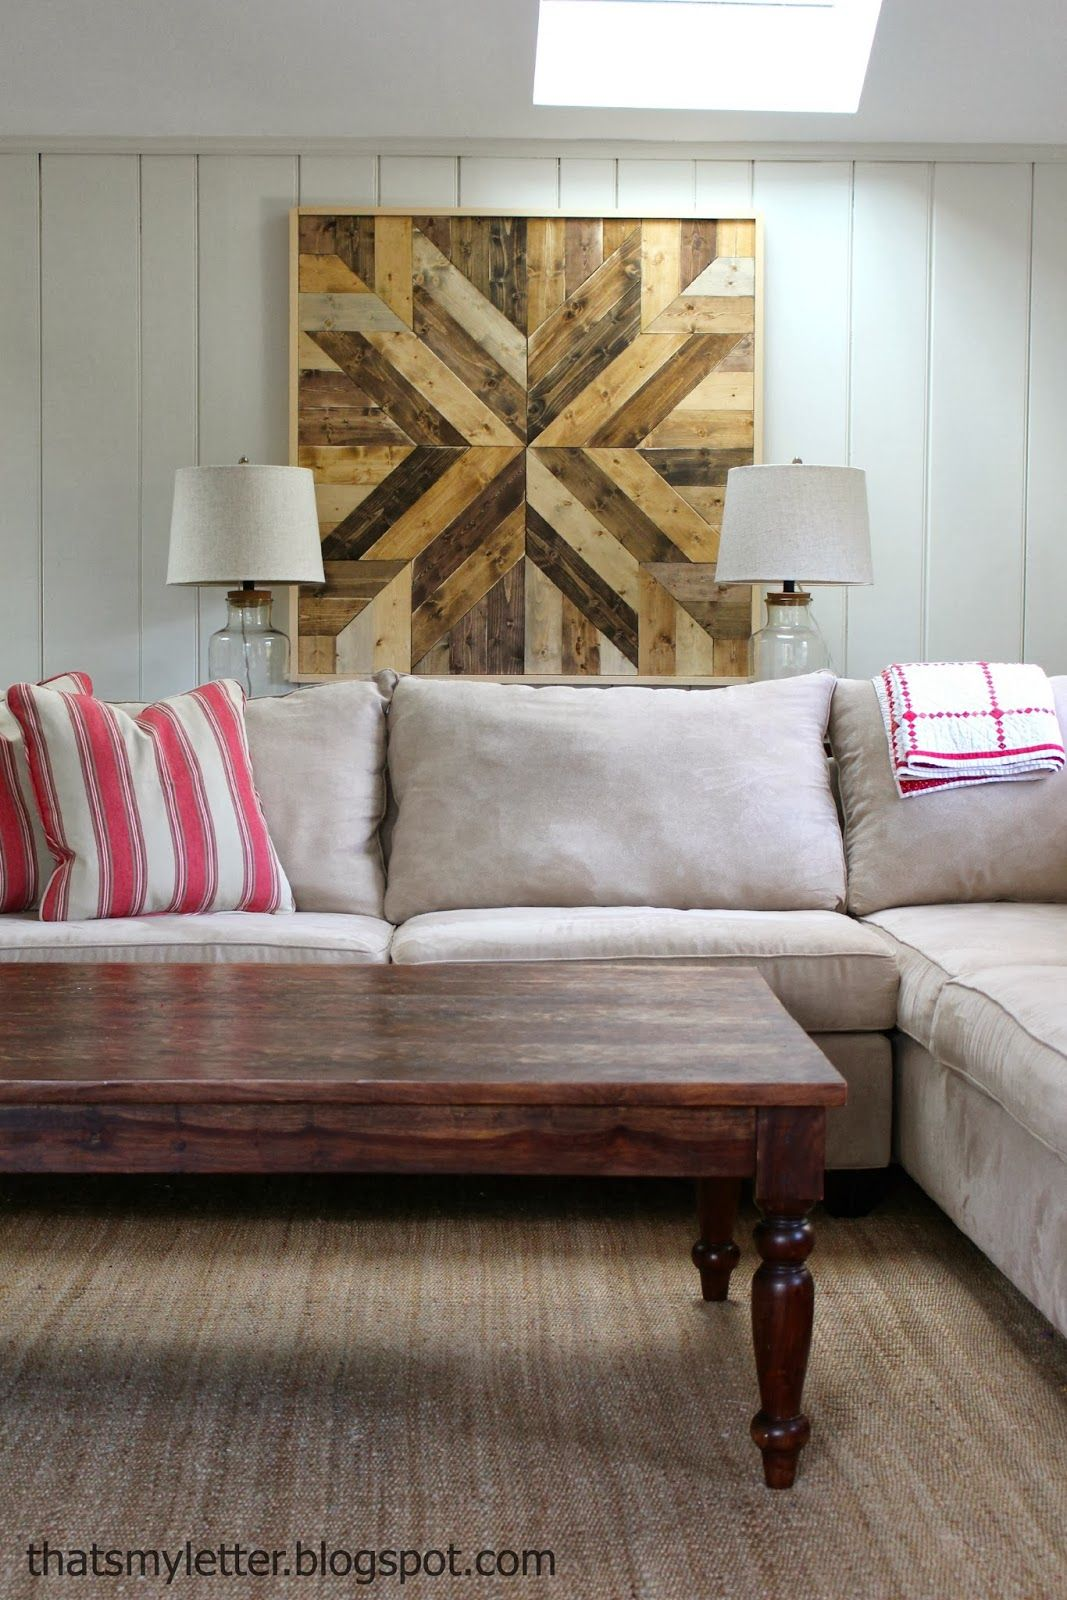 DIY Pottery Barn Planked Wood Quilt Square Want To Make Four Of These For The Family Room